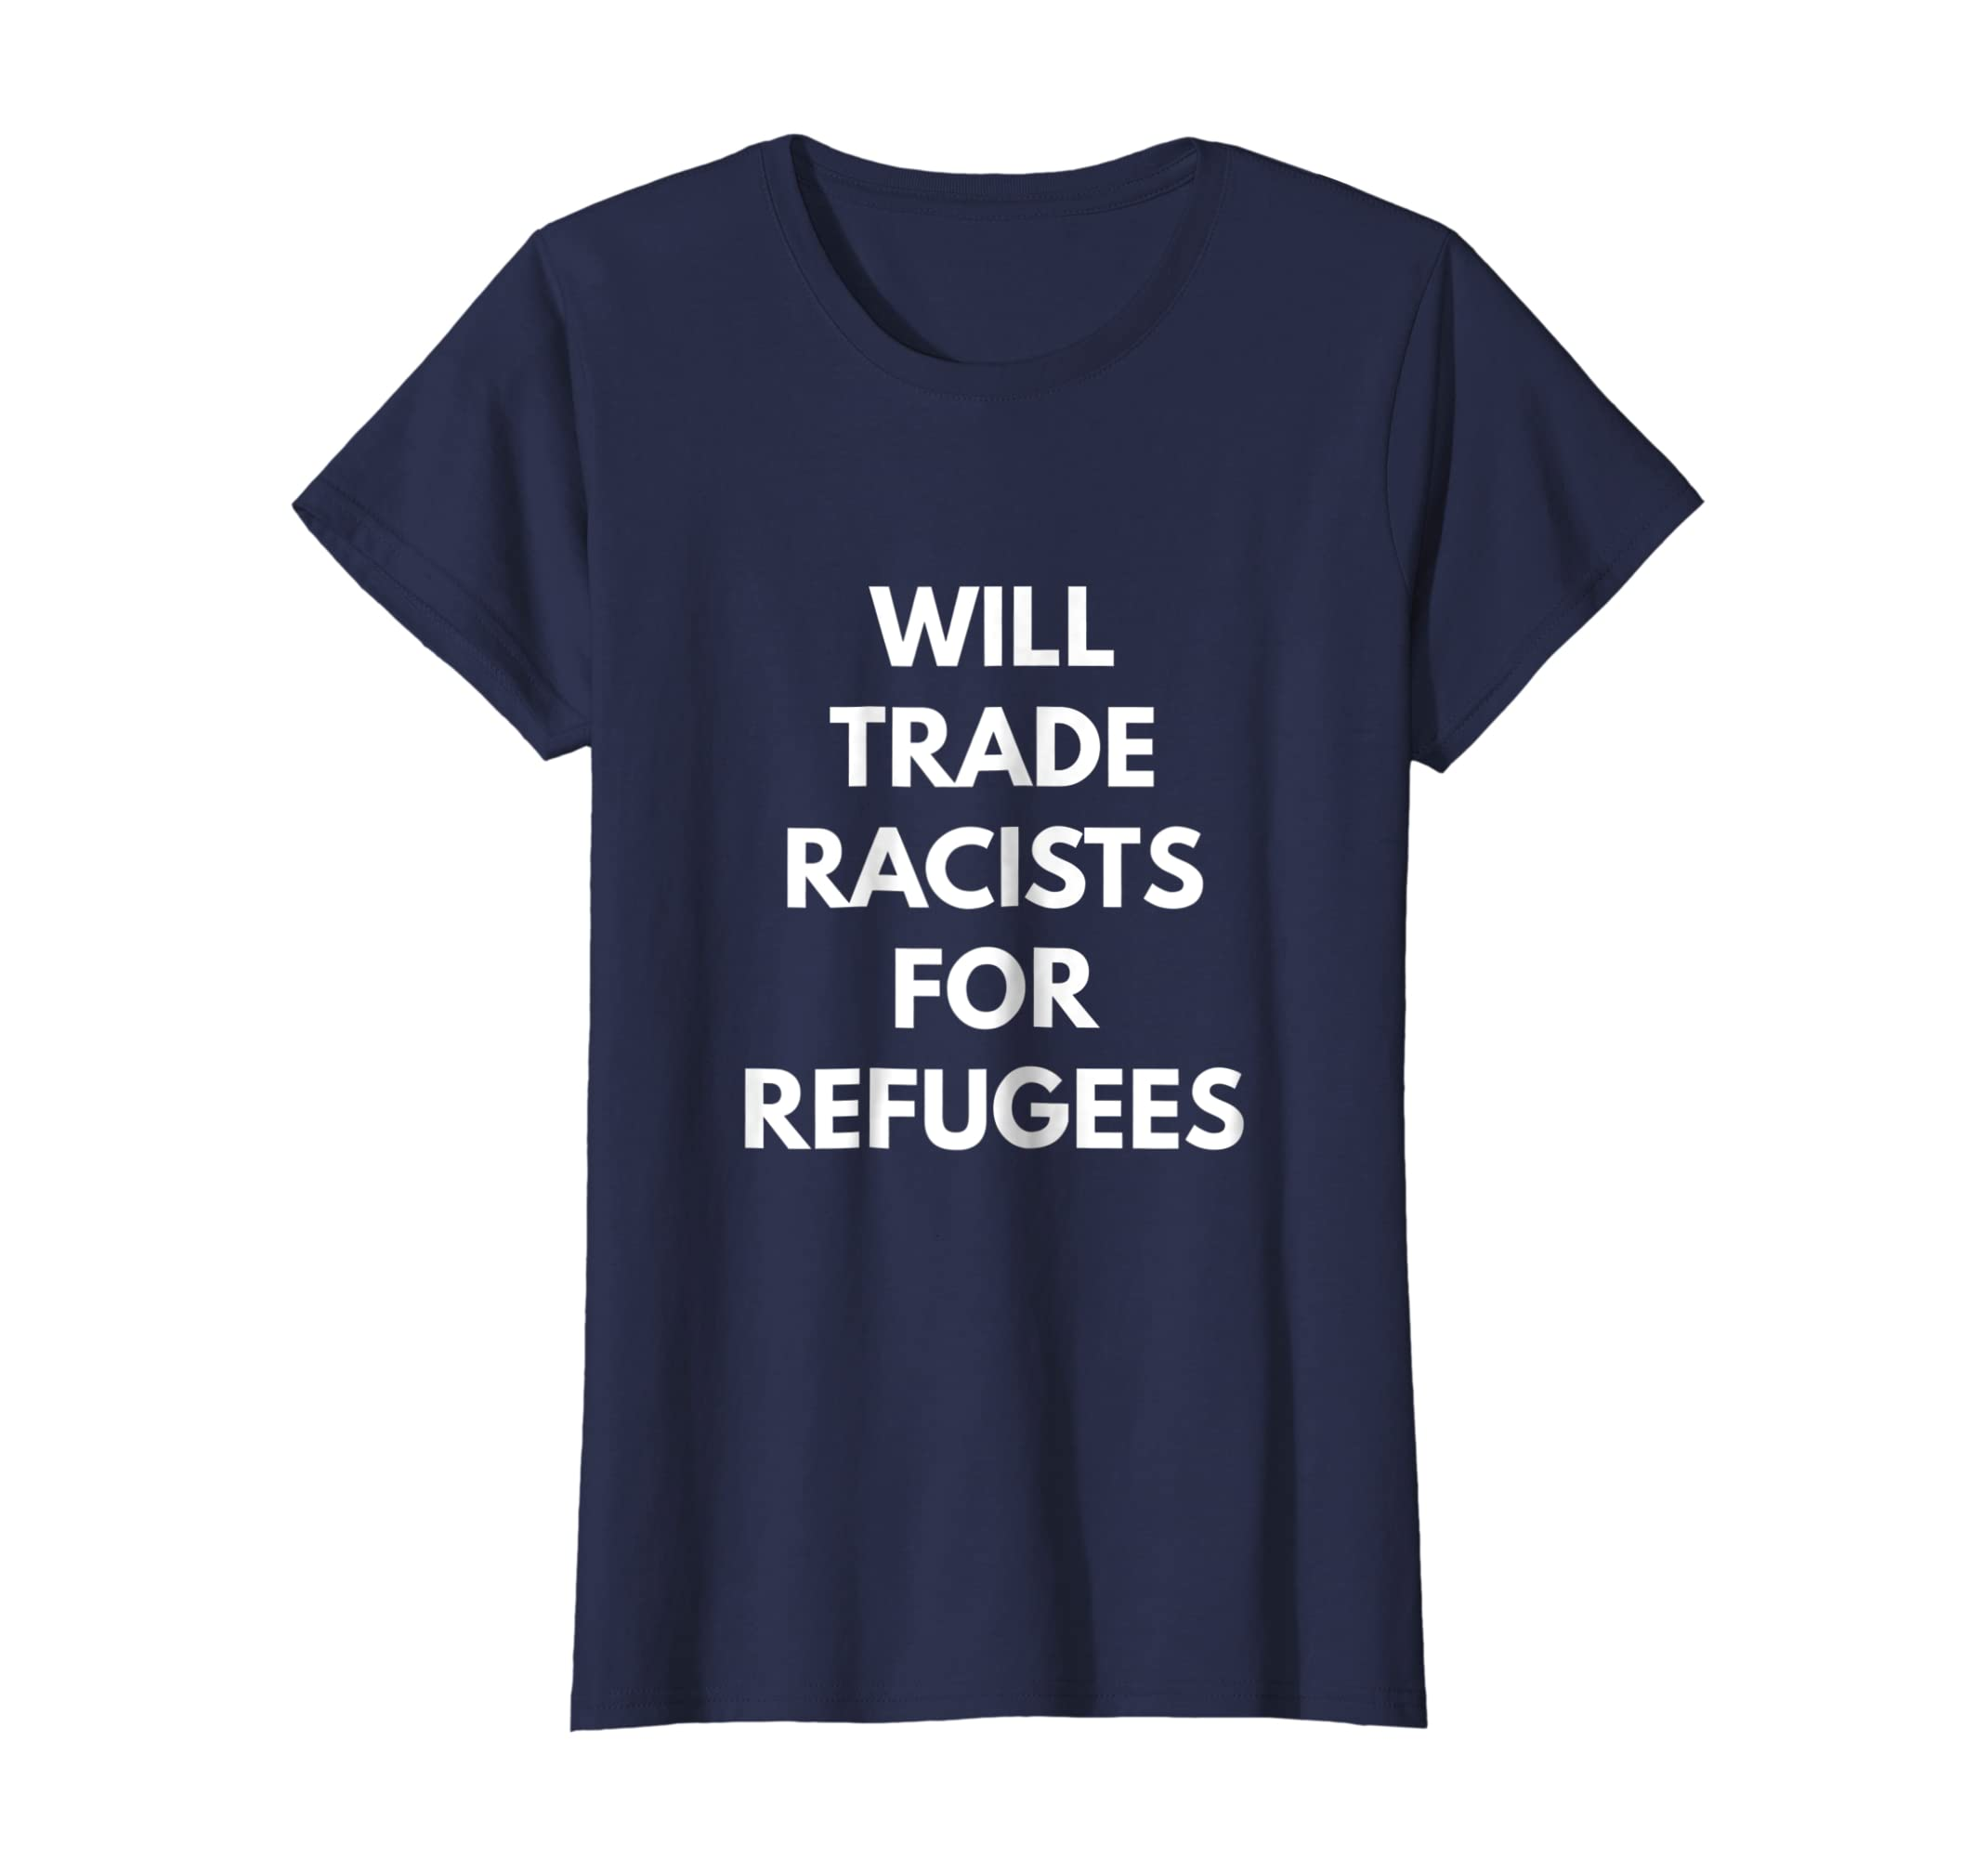 733cf2be7 Amazon.com: Will Trade Racists For Refugees t-shirt - Never Trump Shirts:  Clothing